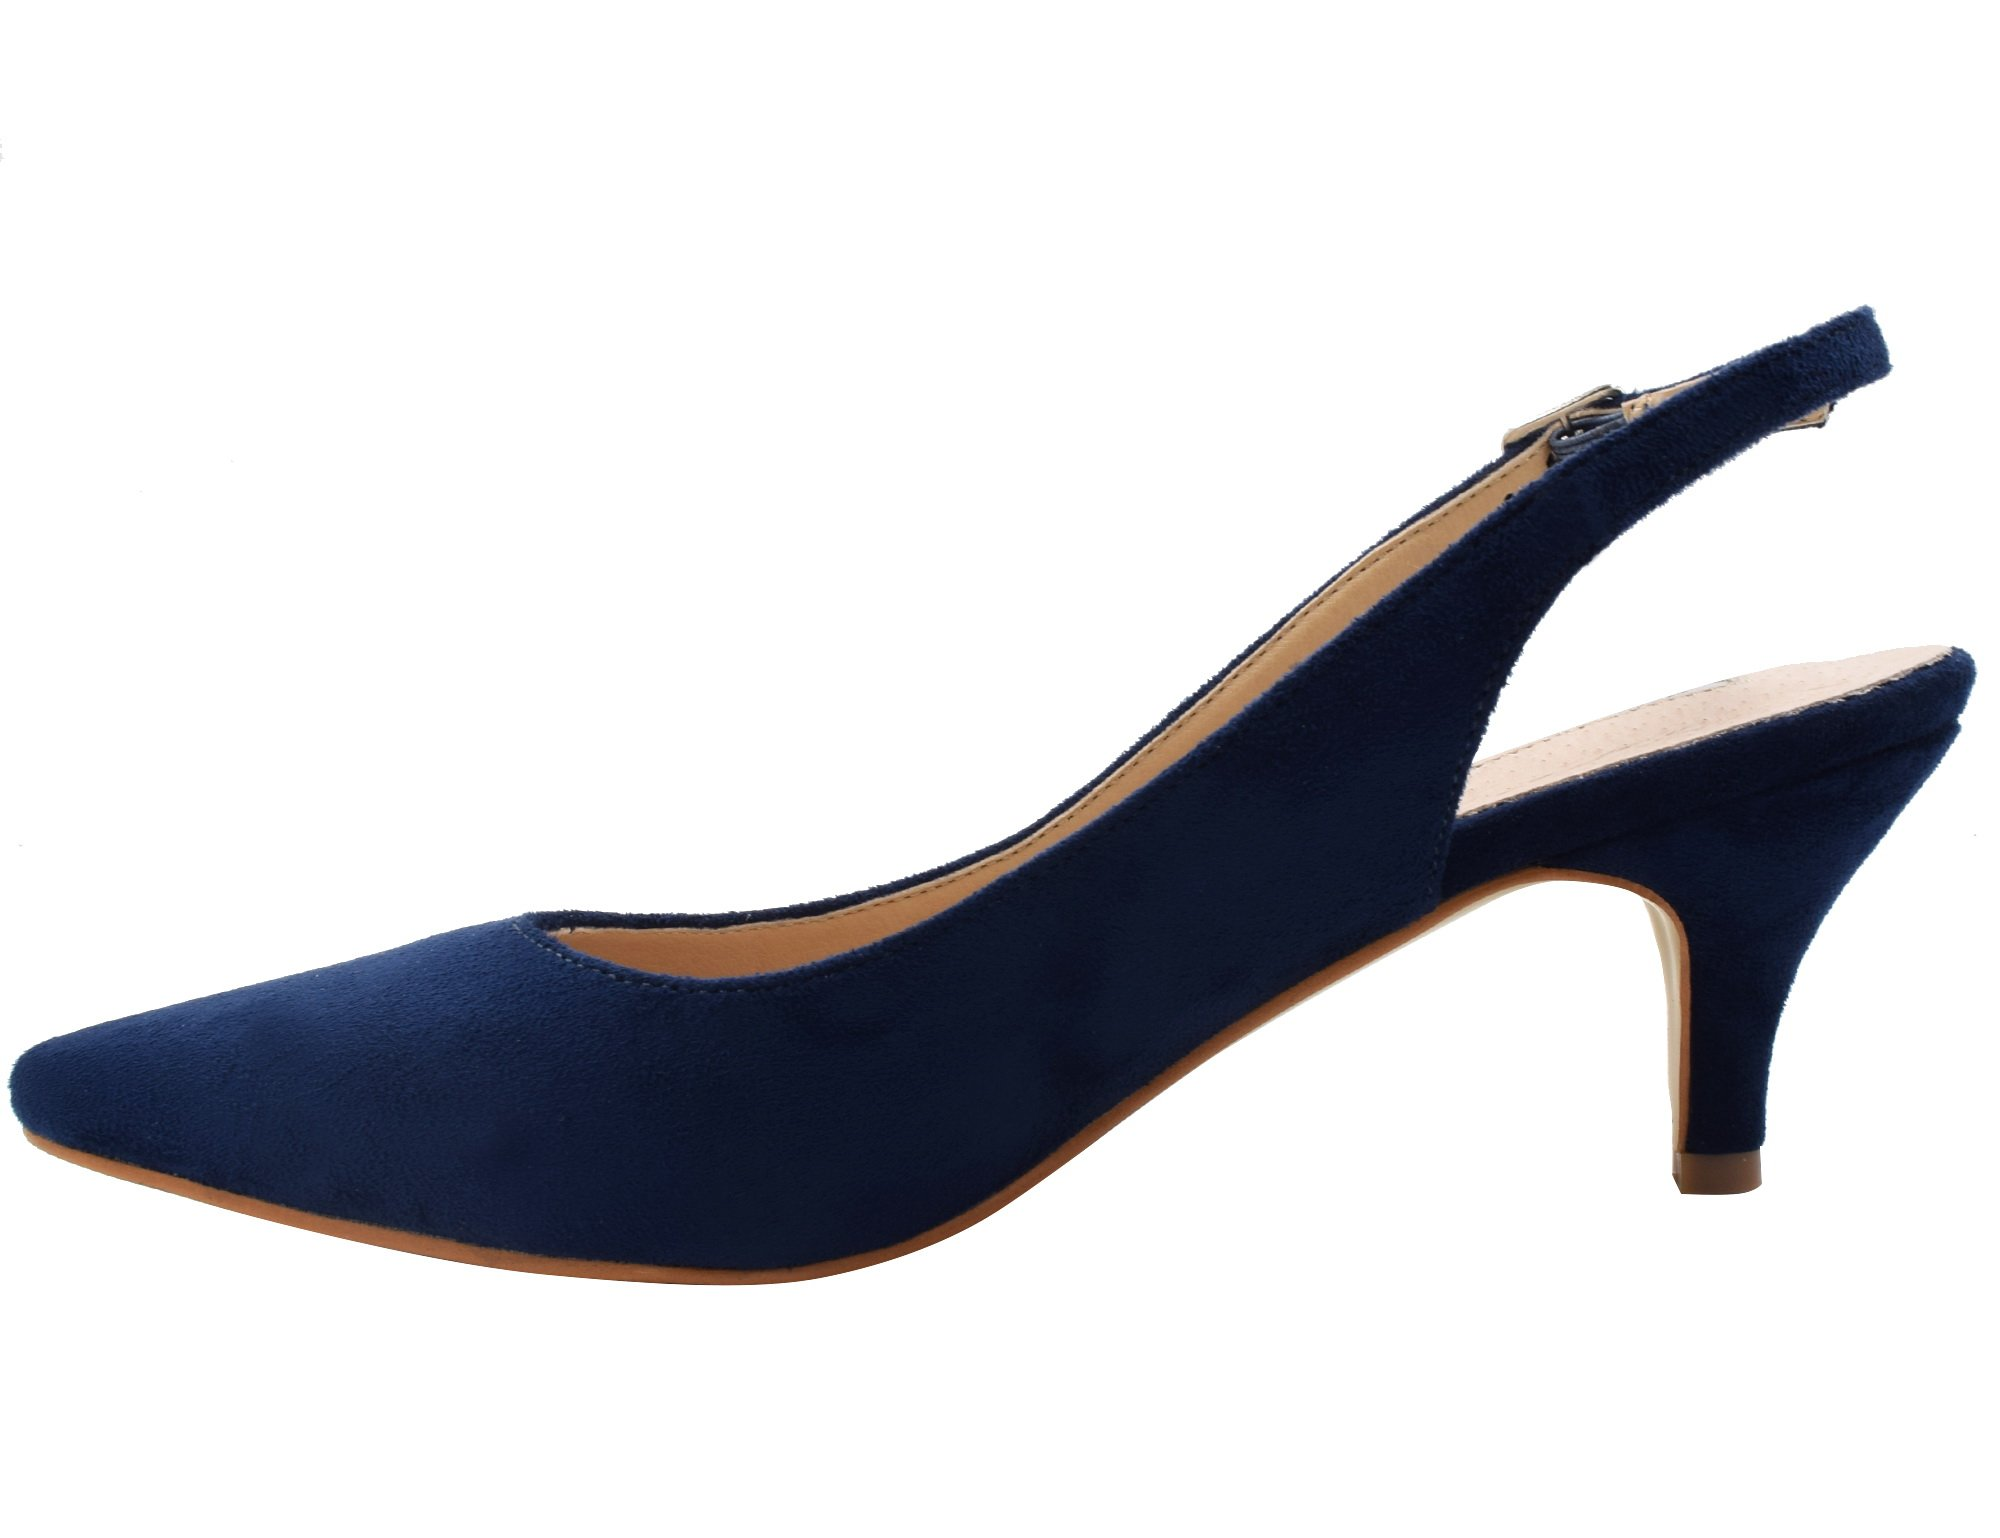 Greatonu Womens Blue Formal Classic Kitten Heels Pumps Shoes Size 9 by Greatonu (Image #3)